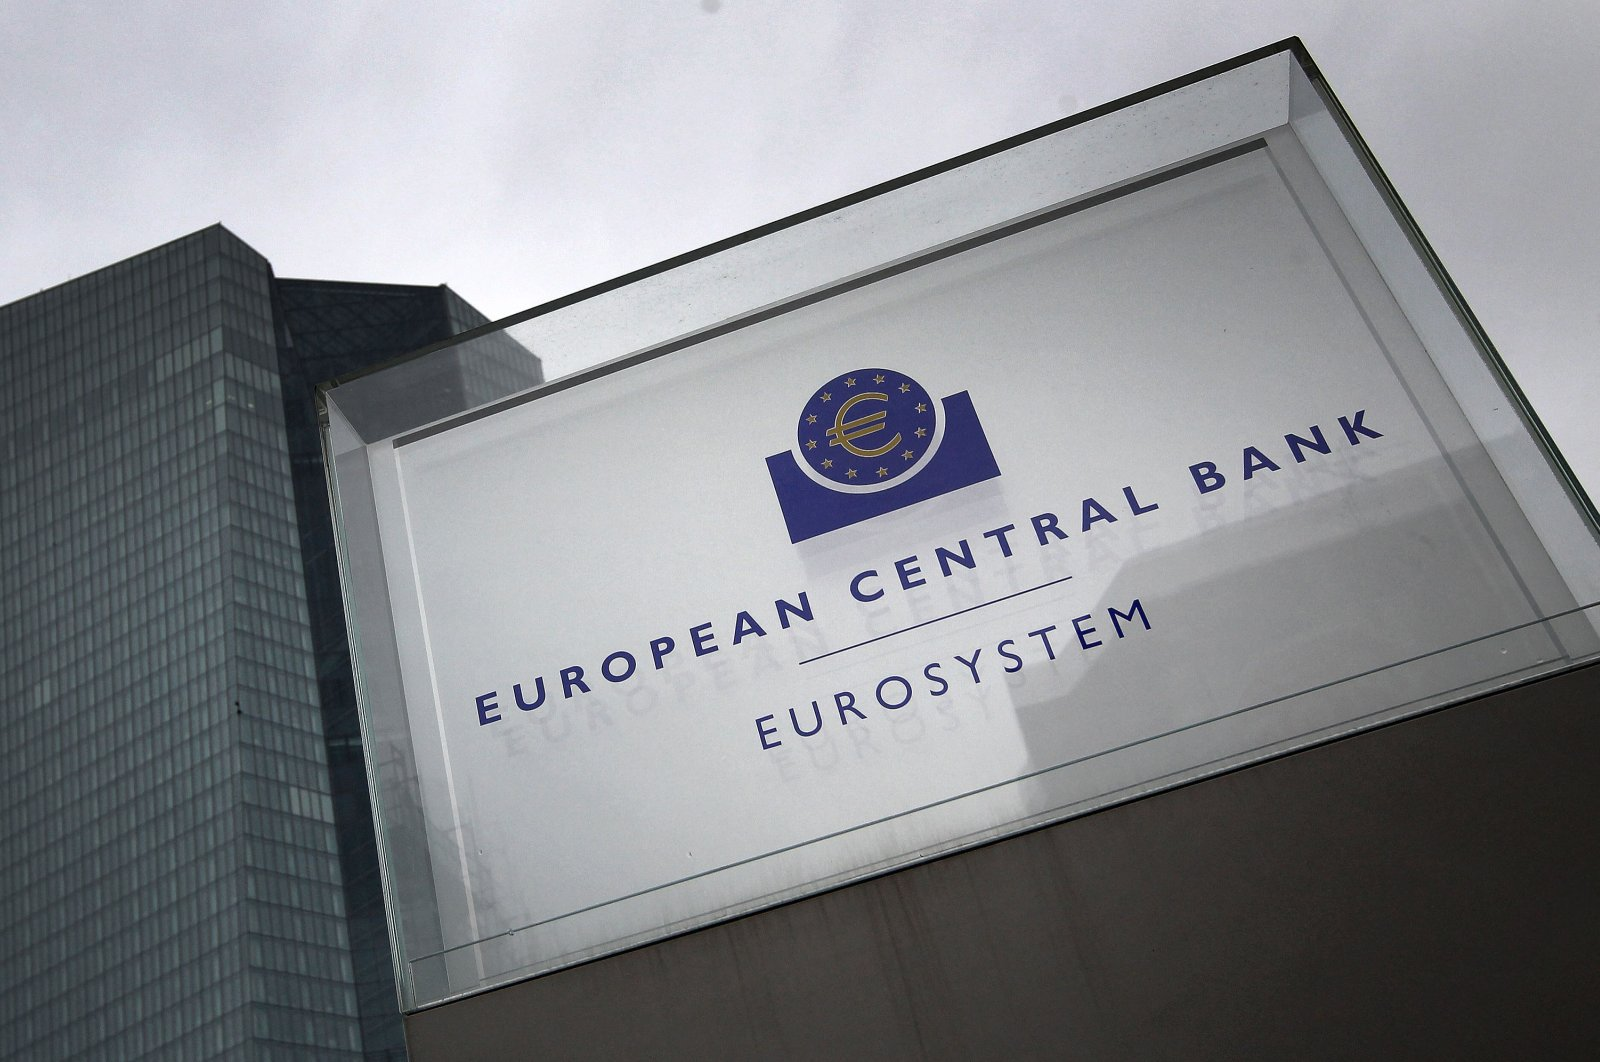 The headquarters of the European Central Bank (ECB) in Frankfurt, Germany, March 12, 2020. (AFP Photo)